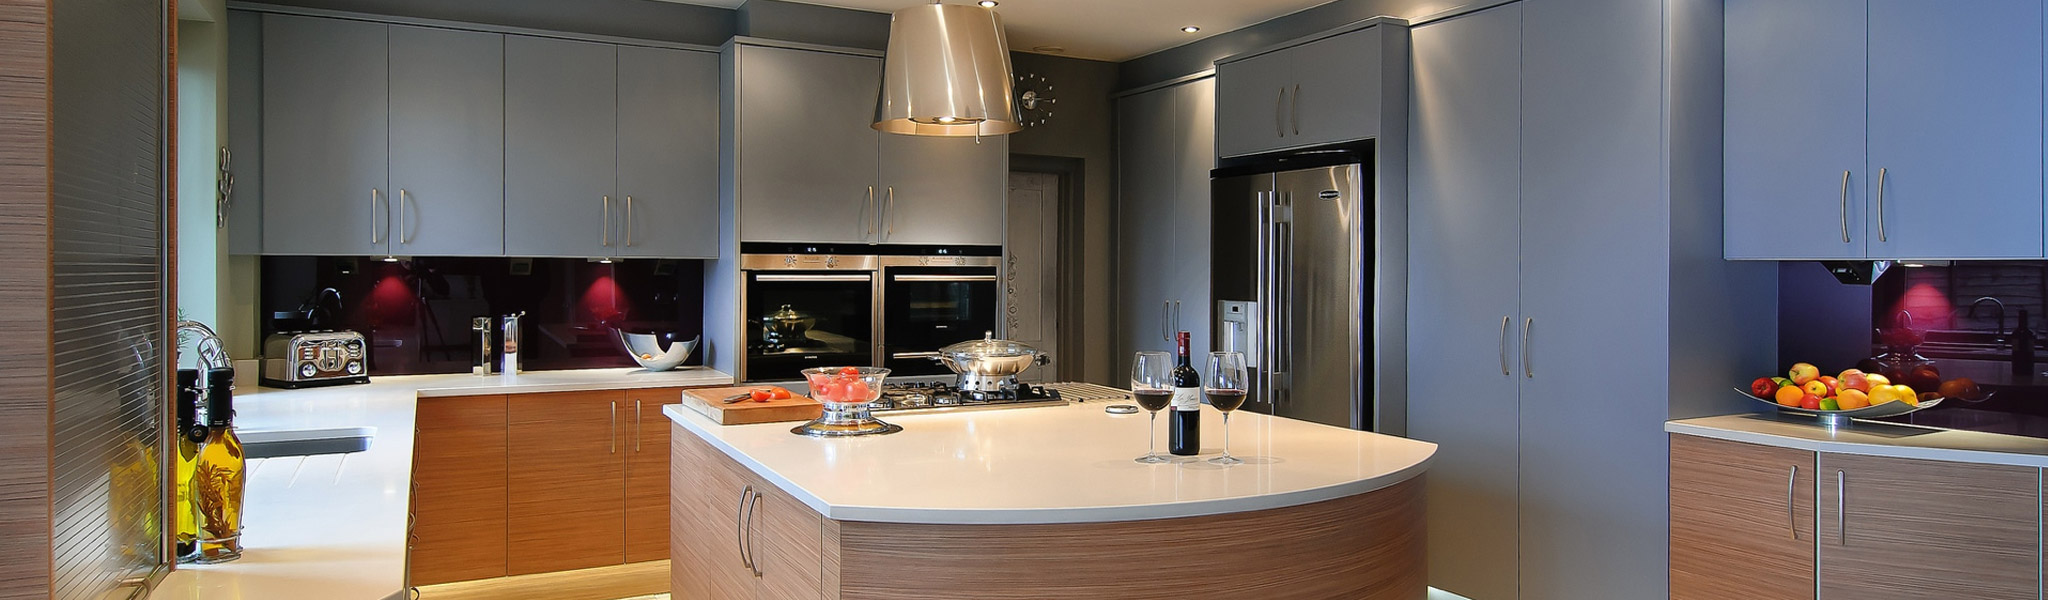 kitchen designers in hampshire opening up the kitchen 850